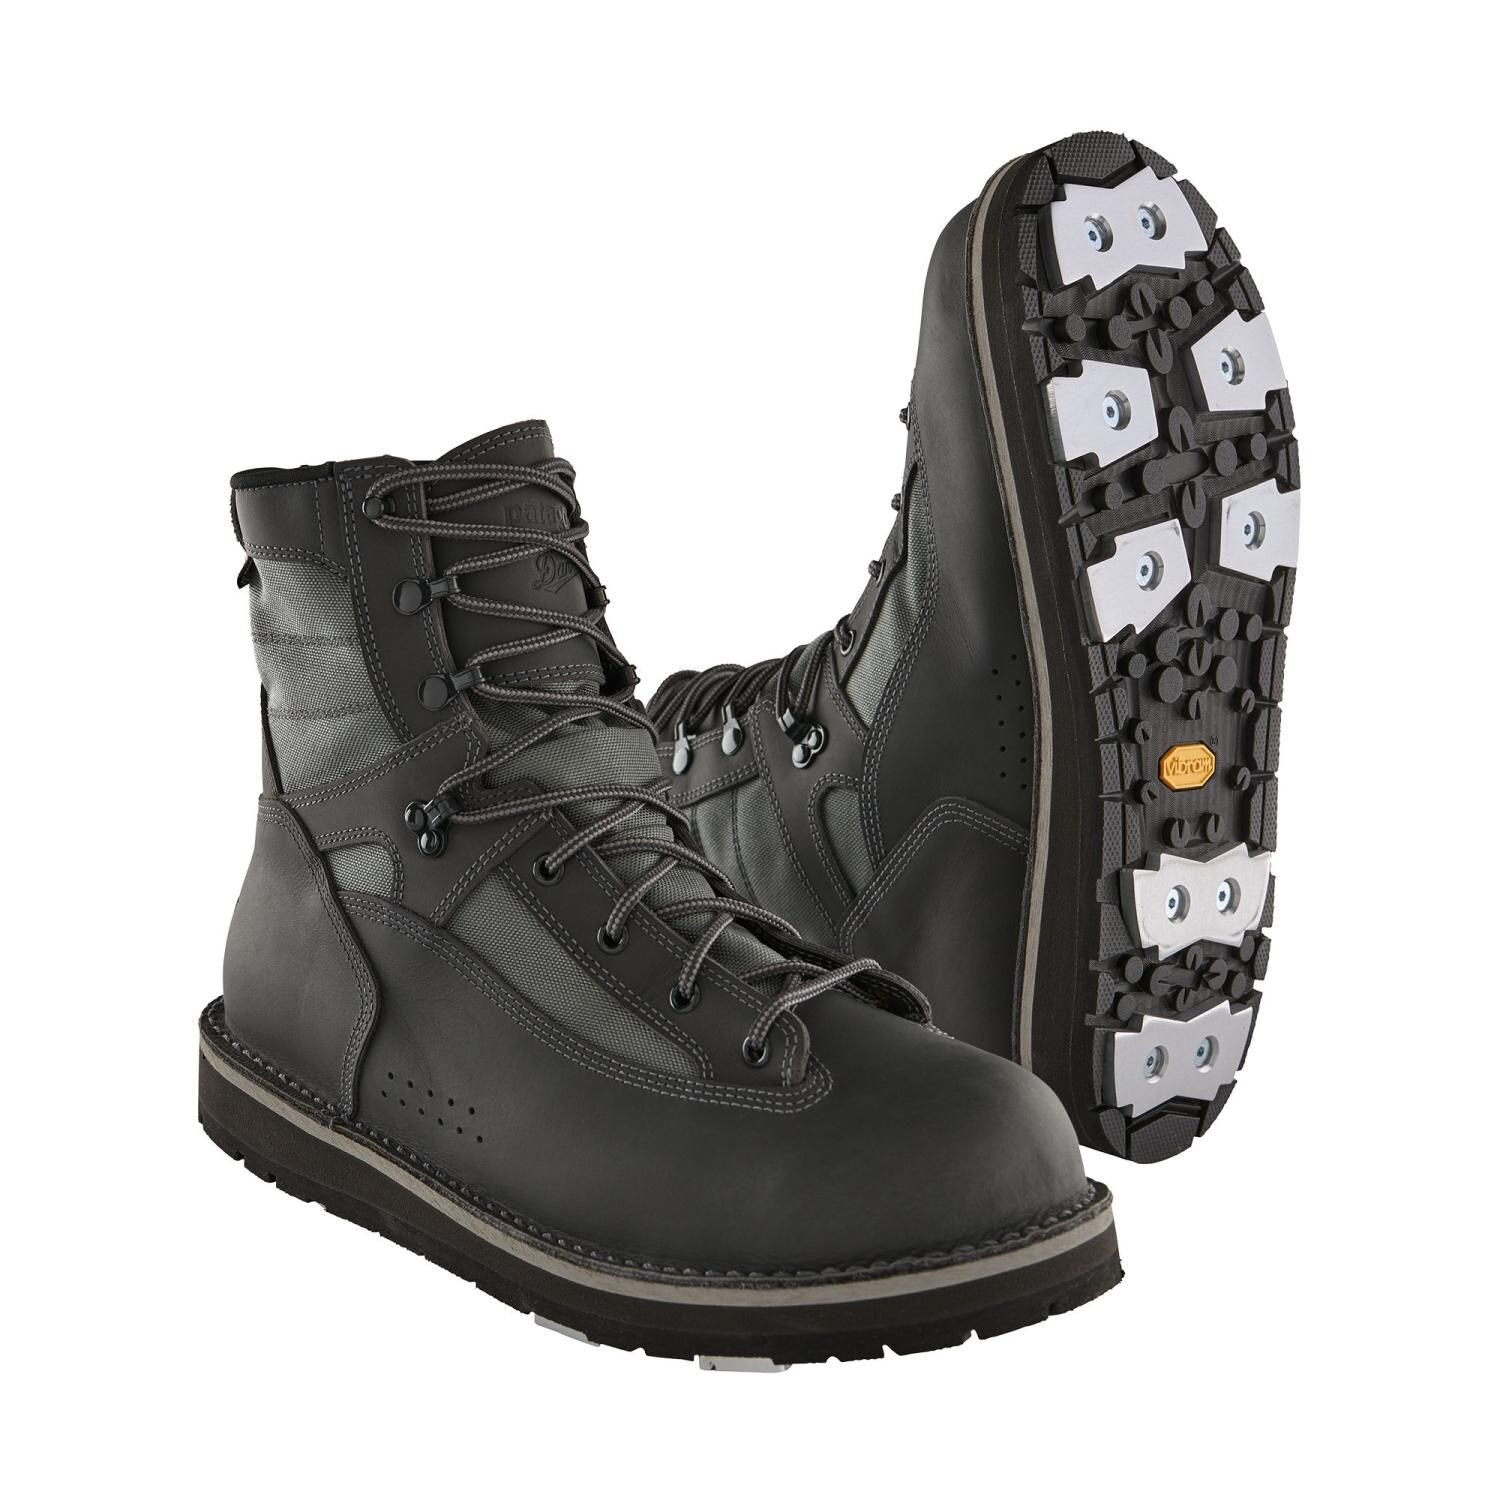 PATAGONIA / DANNER Foot Tractor wading boot